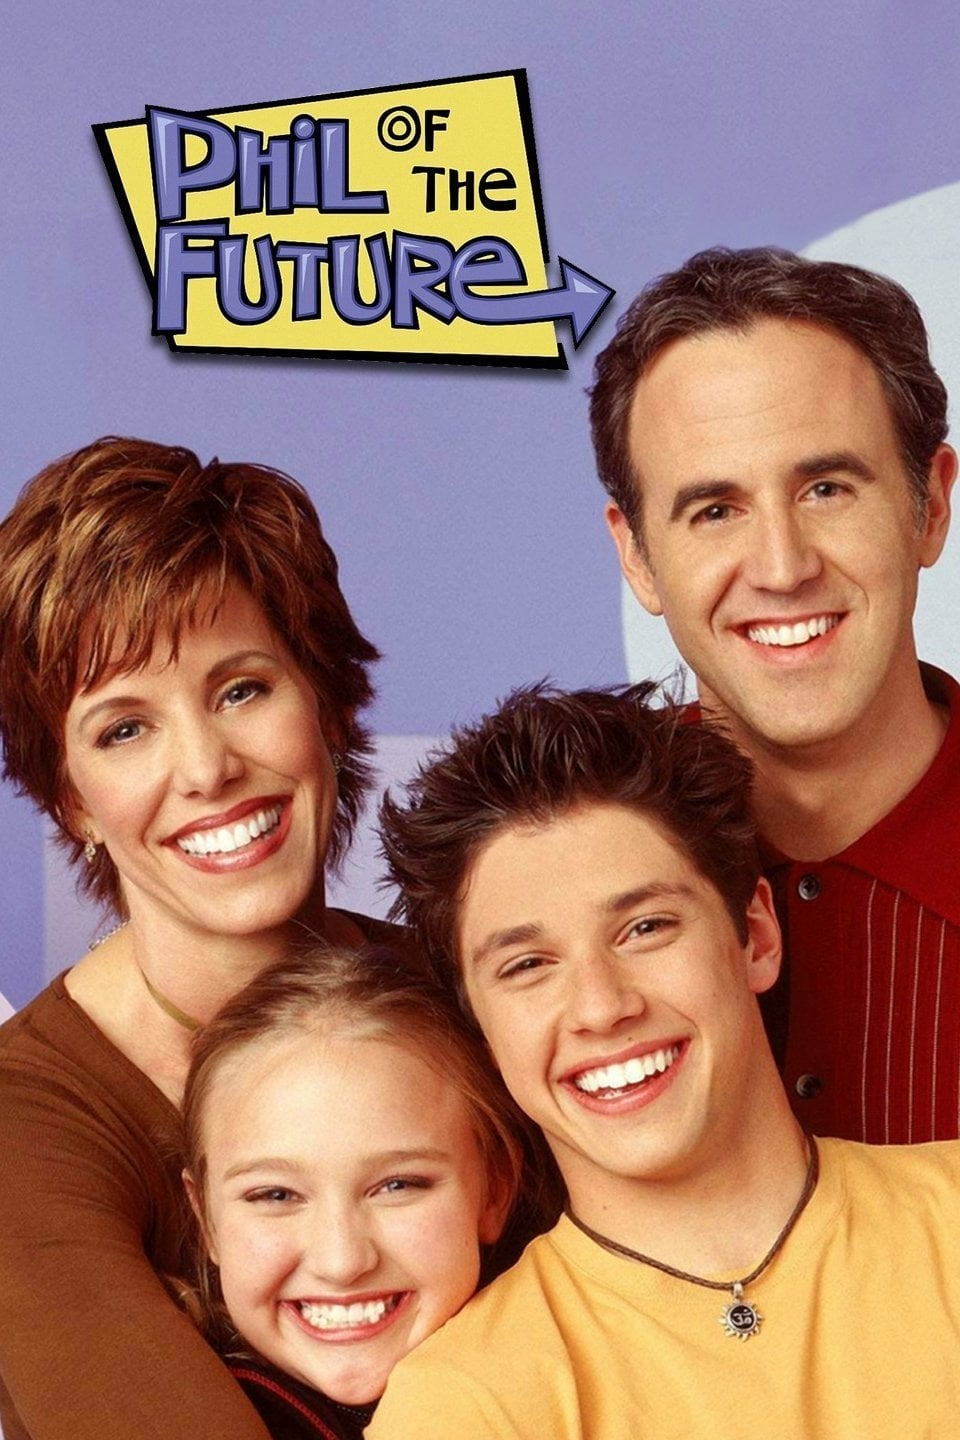 Phil of the Future (2004)